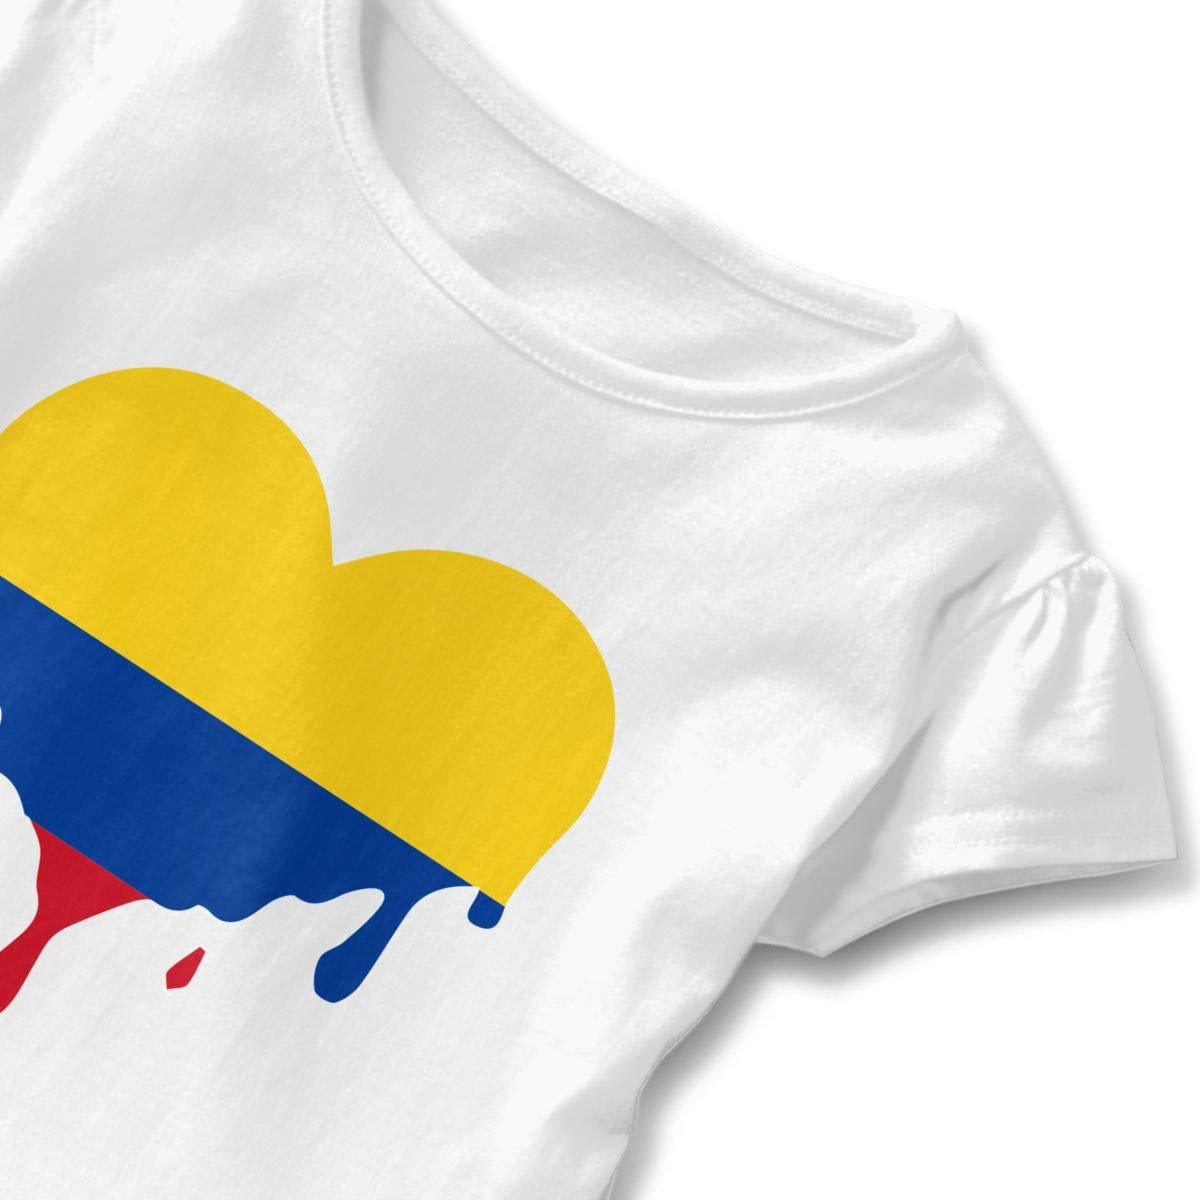 SC/_VD08 Dripping Heart Colombia Flag Kids Children Short-Sleeved Tshirts Top/&Tee